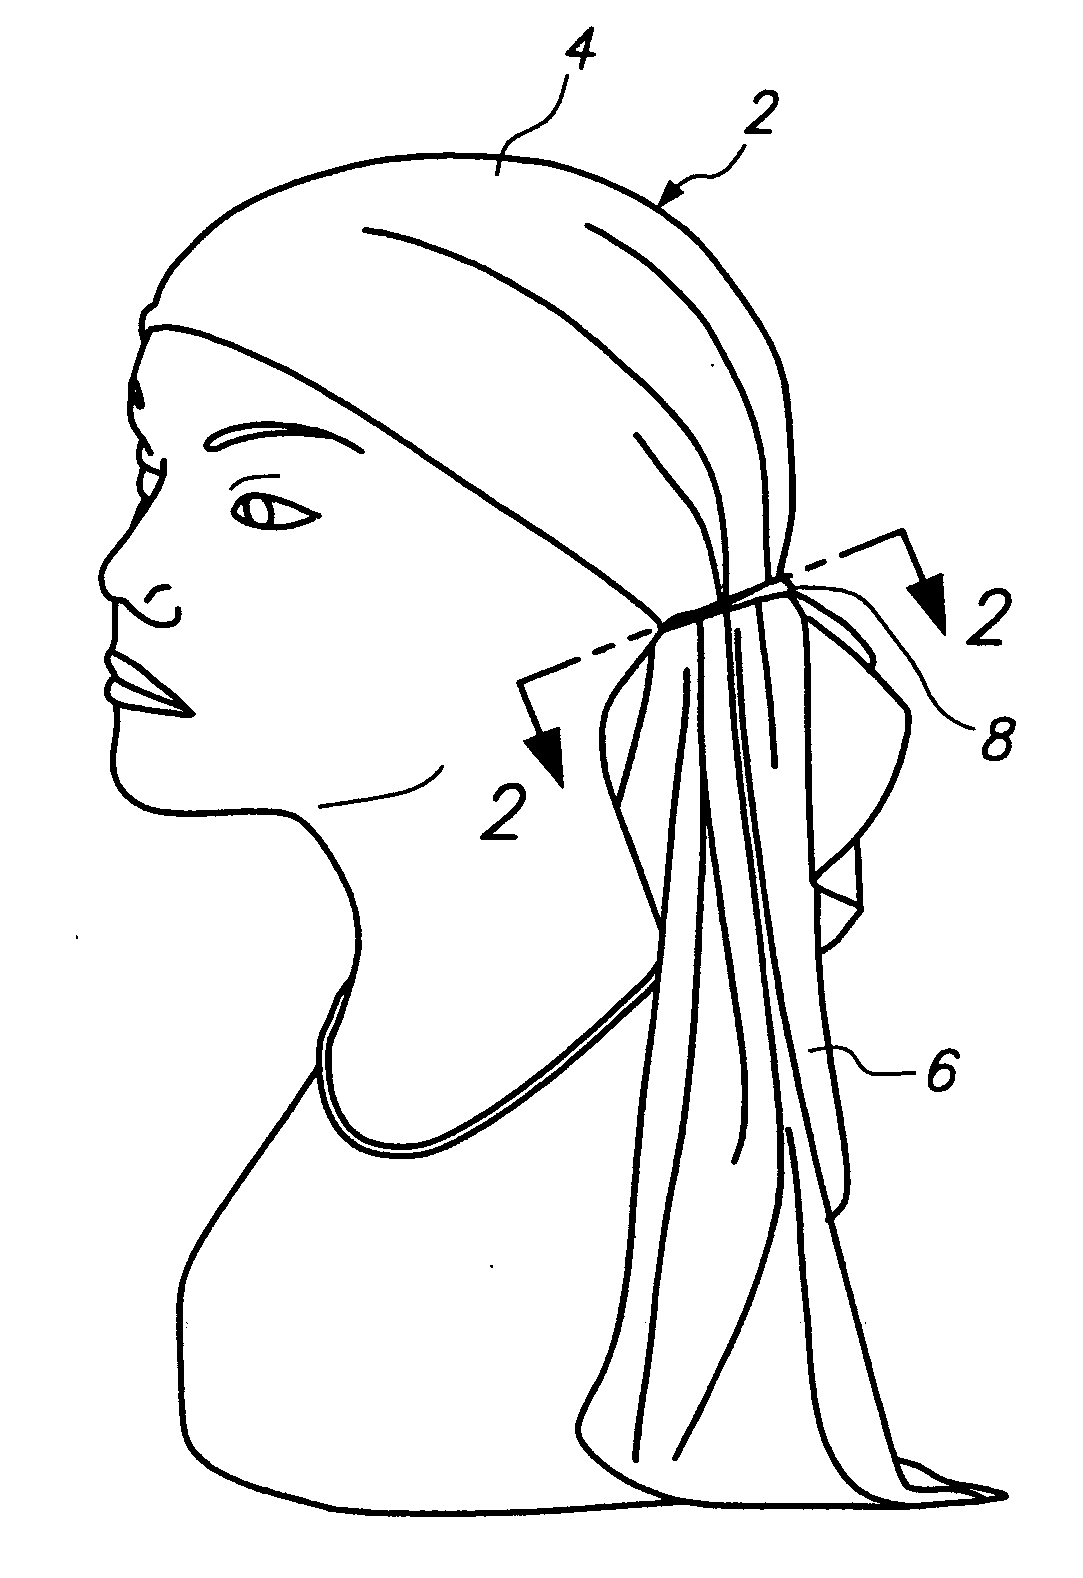 Drawn scarf head scarf US20080209614 of it Patent and